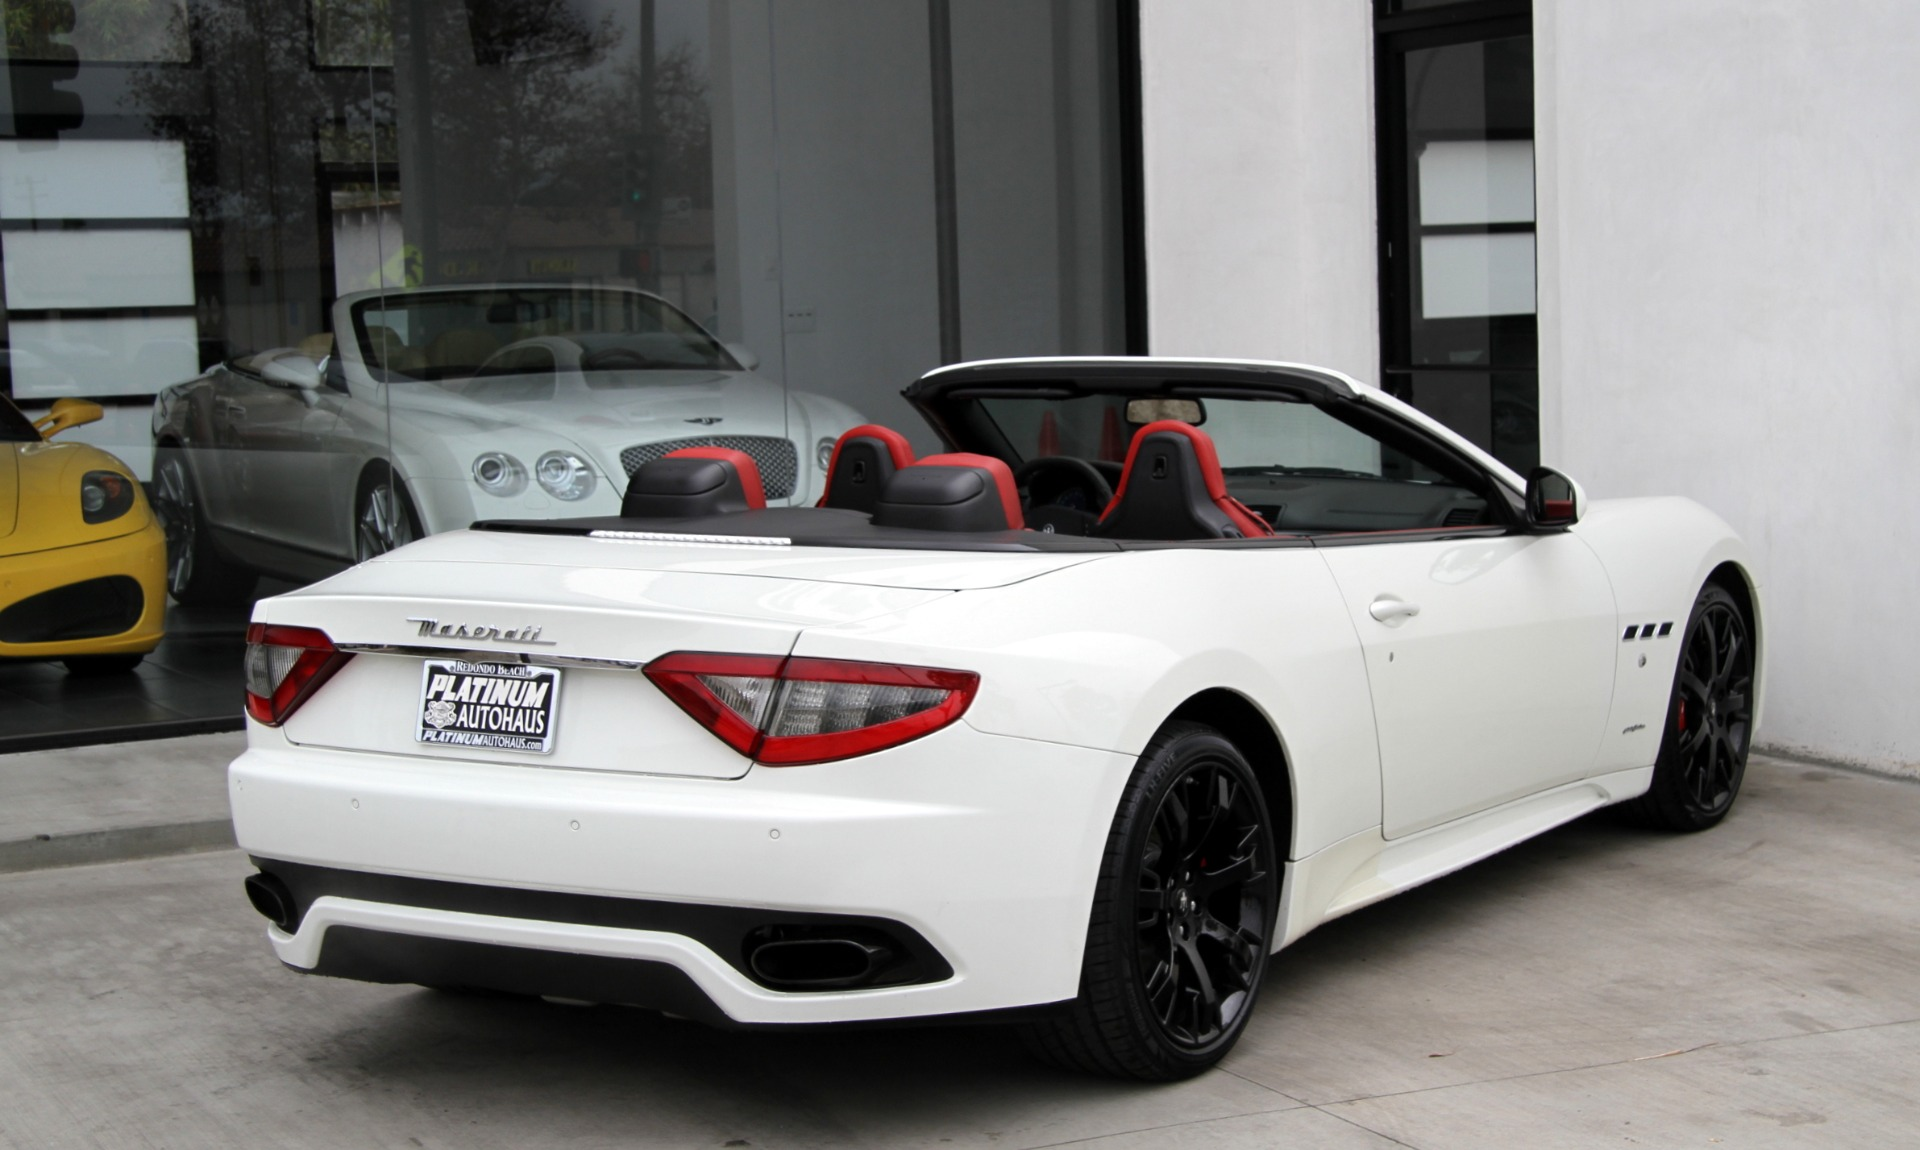 2014 maserati granturismo sport stock 6130 for sale near redondo beach ca ca maserati dealer. Black Bedroom Furniture Sets. Home Design Ideas